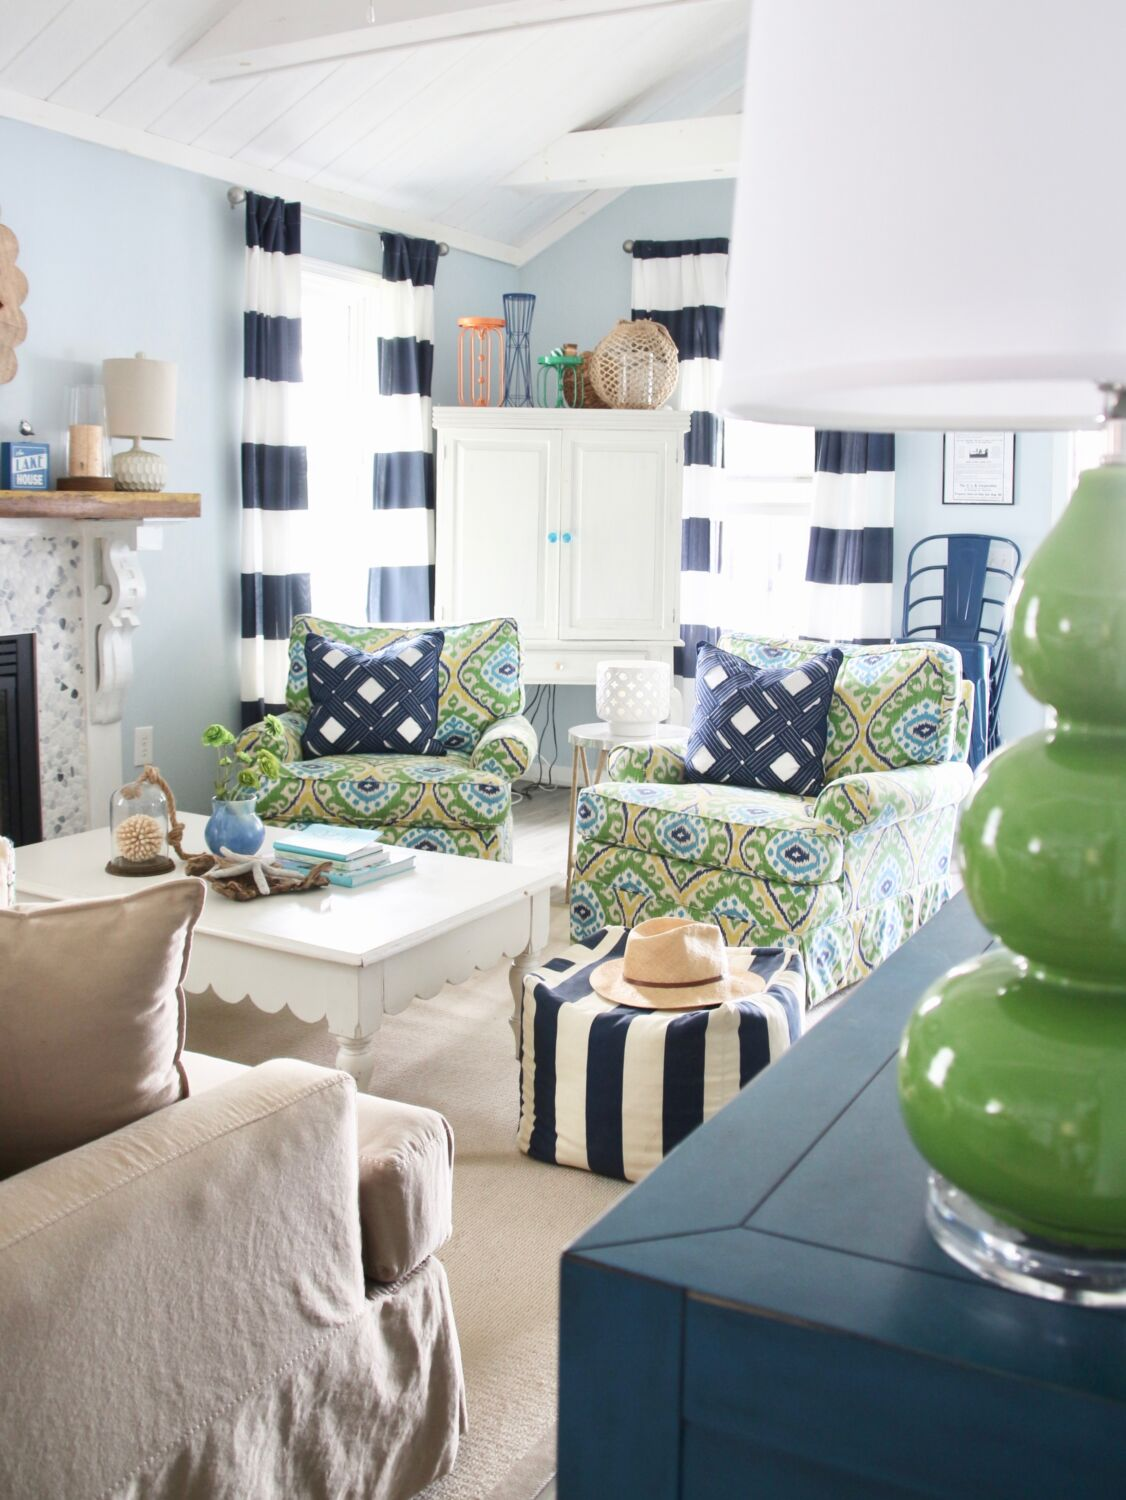 Making a Splash Down at the Lake with New Nautical Decor